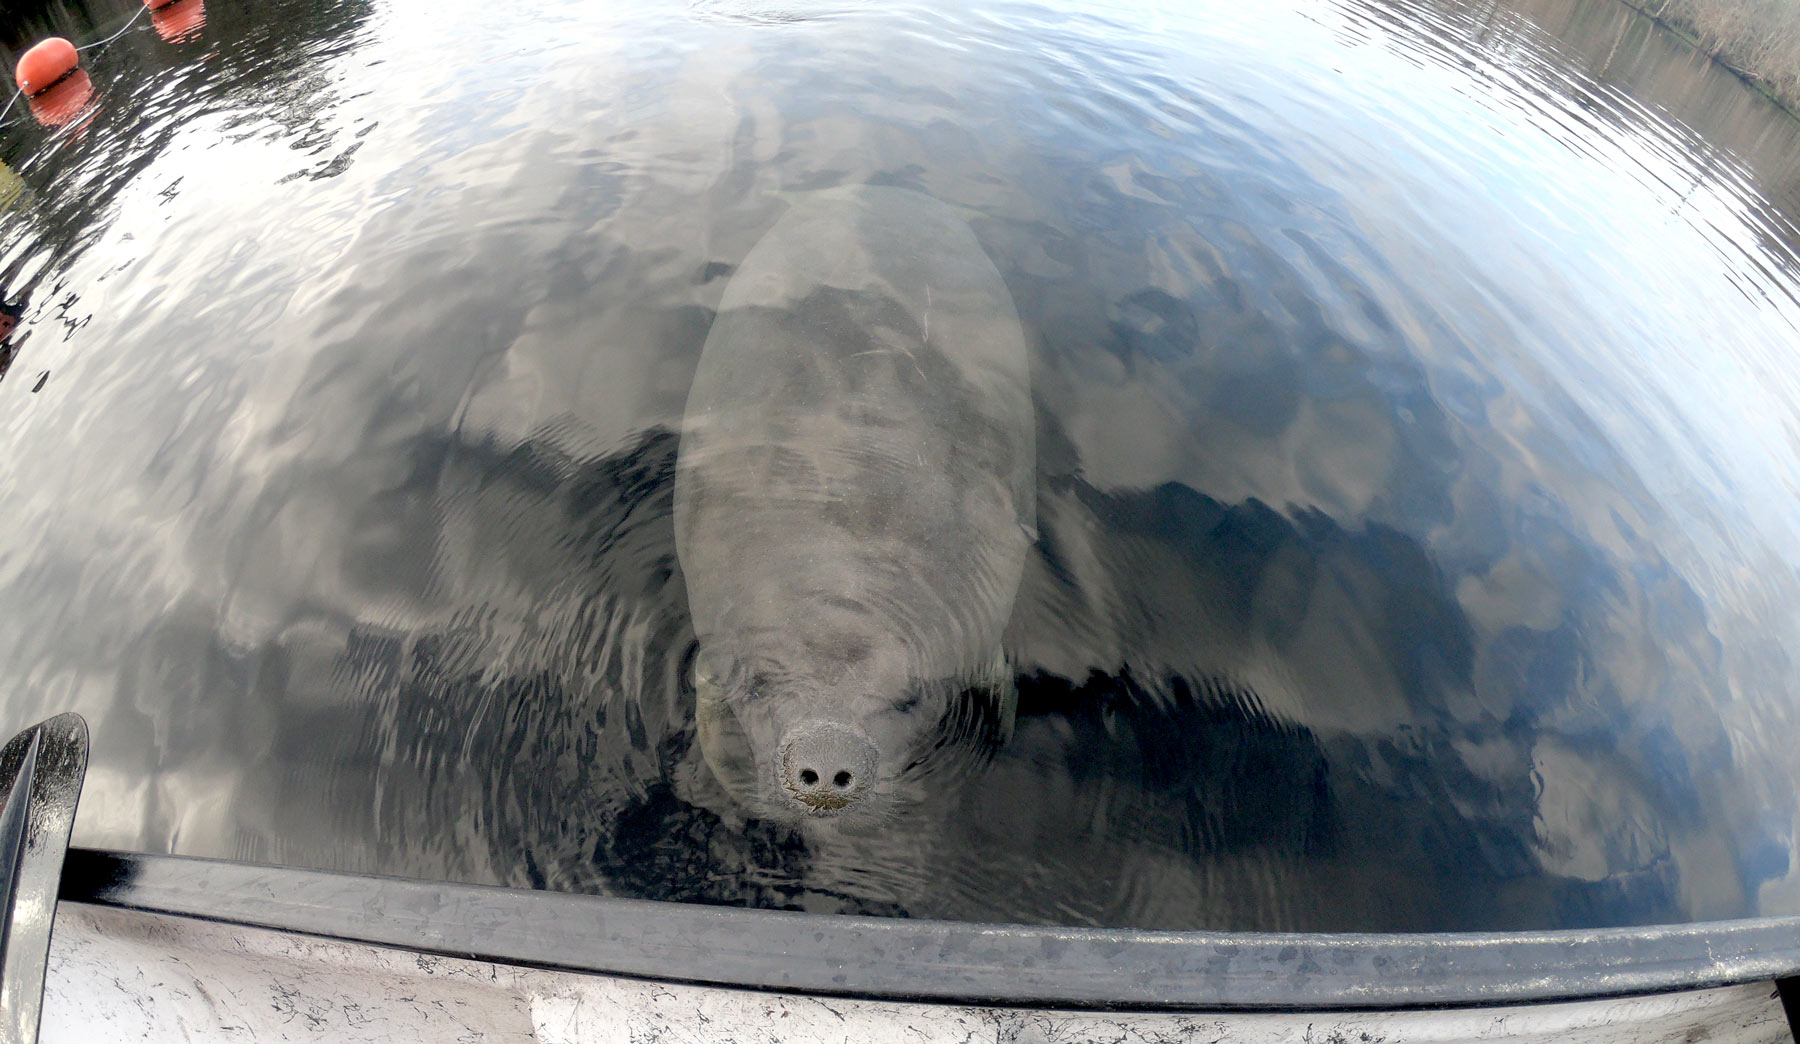 Manatee gazing at boater at Blue Spring State Park, Florida